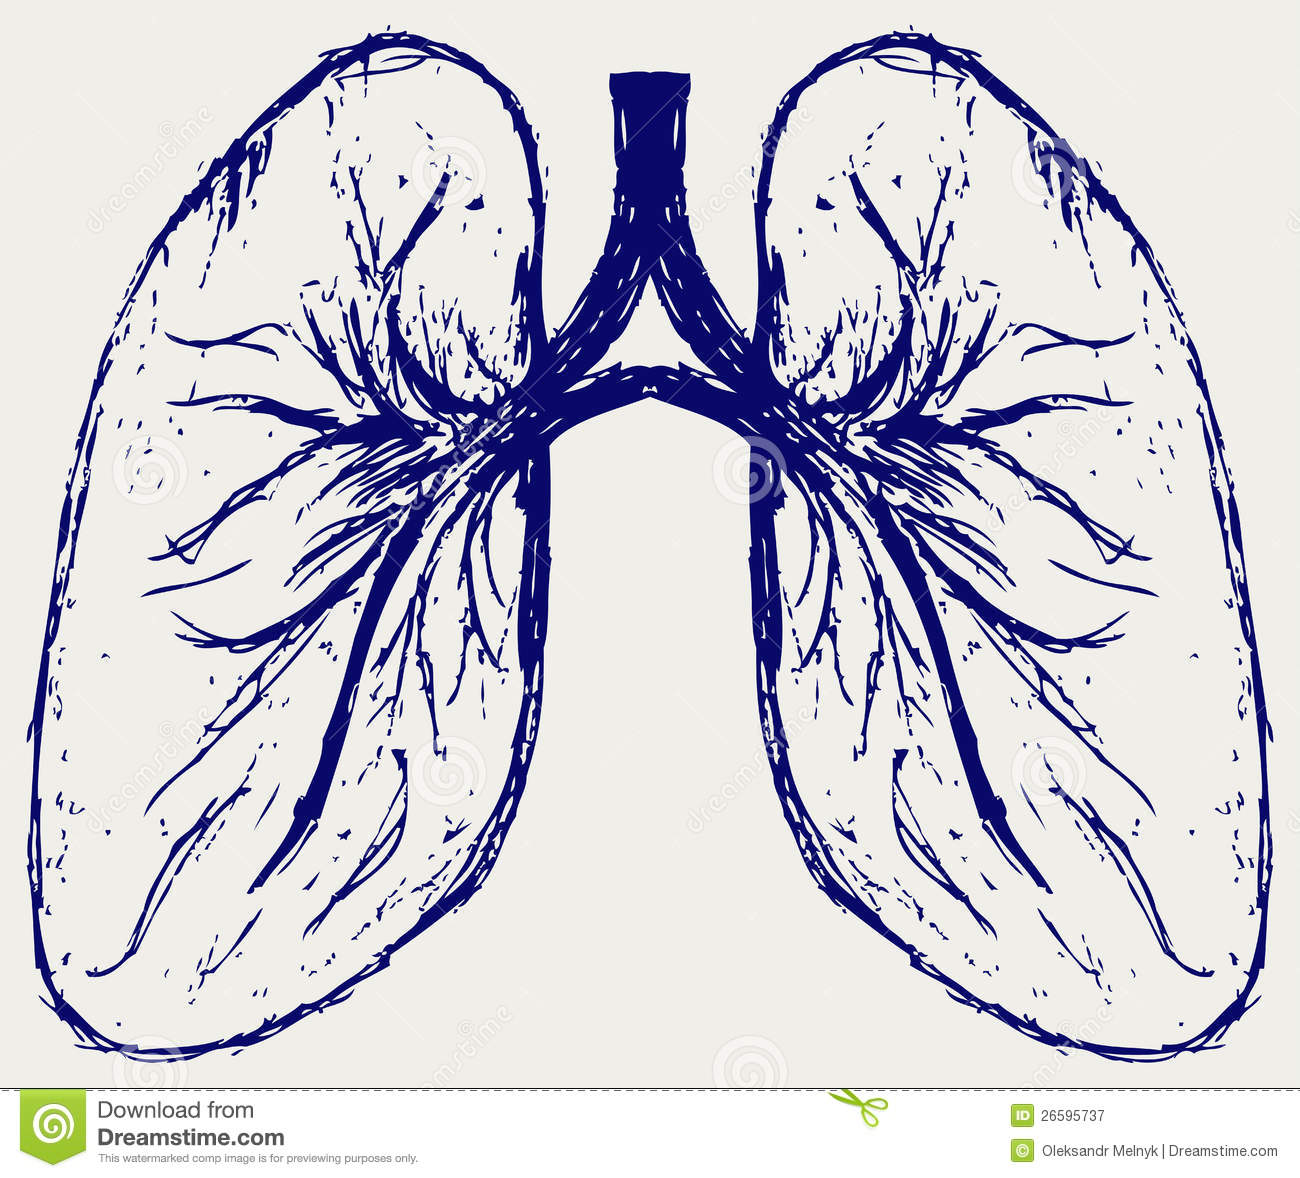 how-to-draw-lungs-step- ...